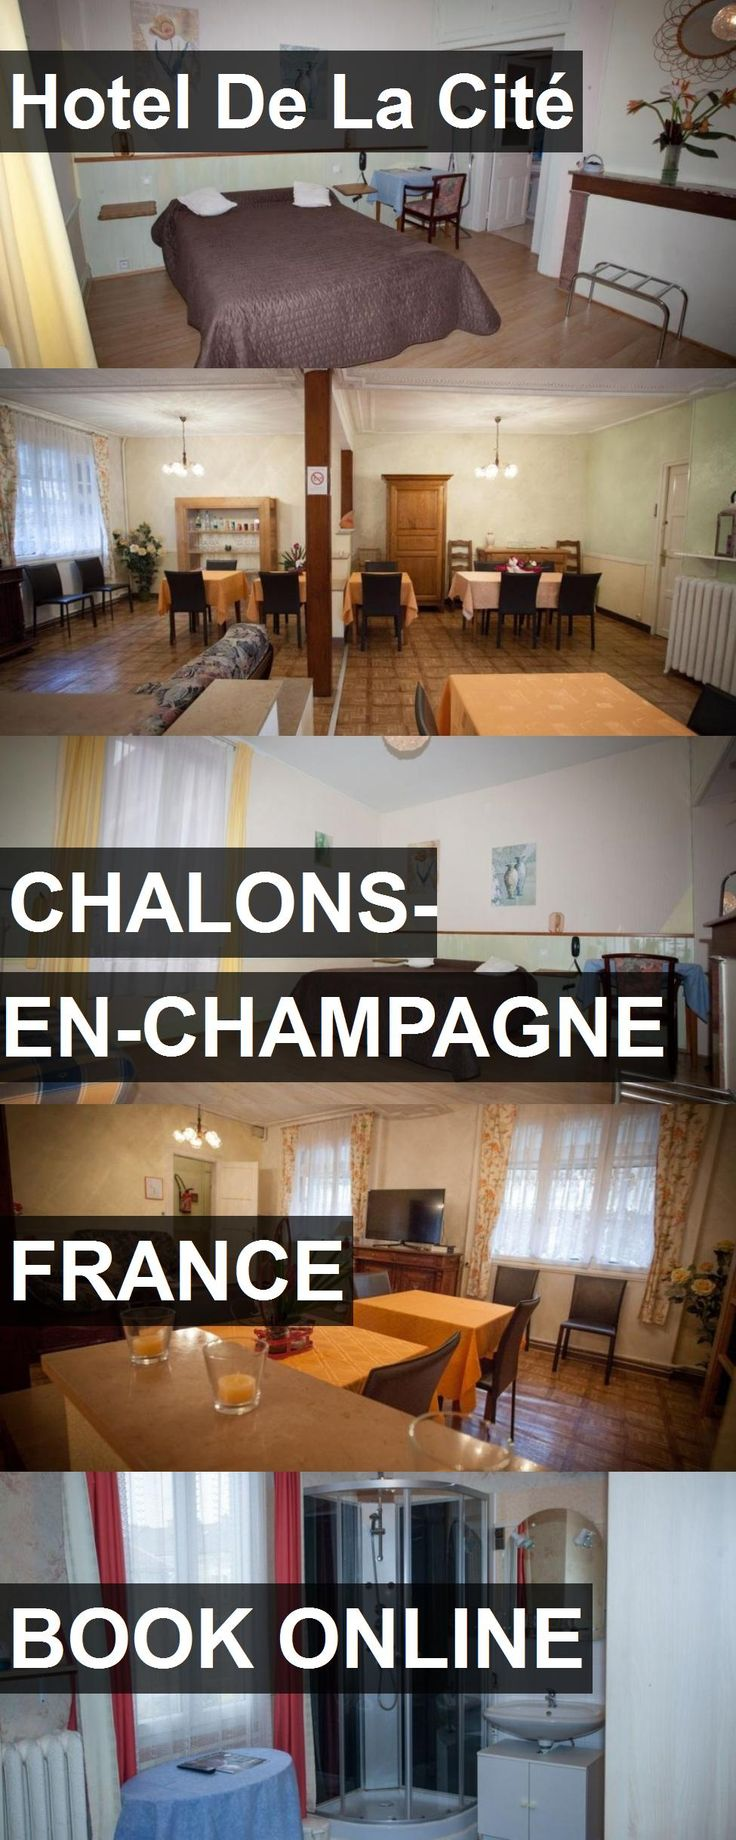 Hotel De La Cité in Chalons-en-Champagne, France. For more information, photos, reviews and best prices please follow the link. #France #Chalons-en-Champagne #travel #vacation #hotel